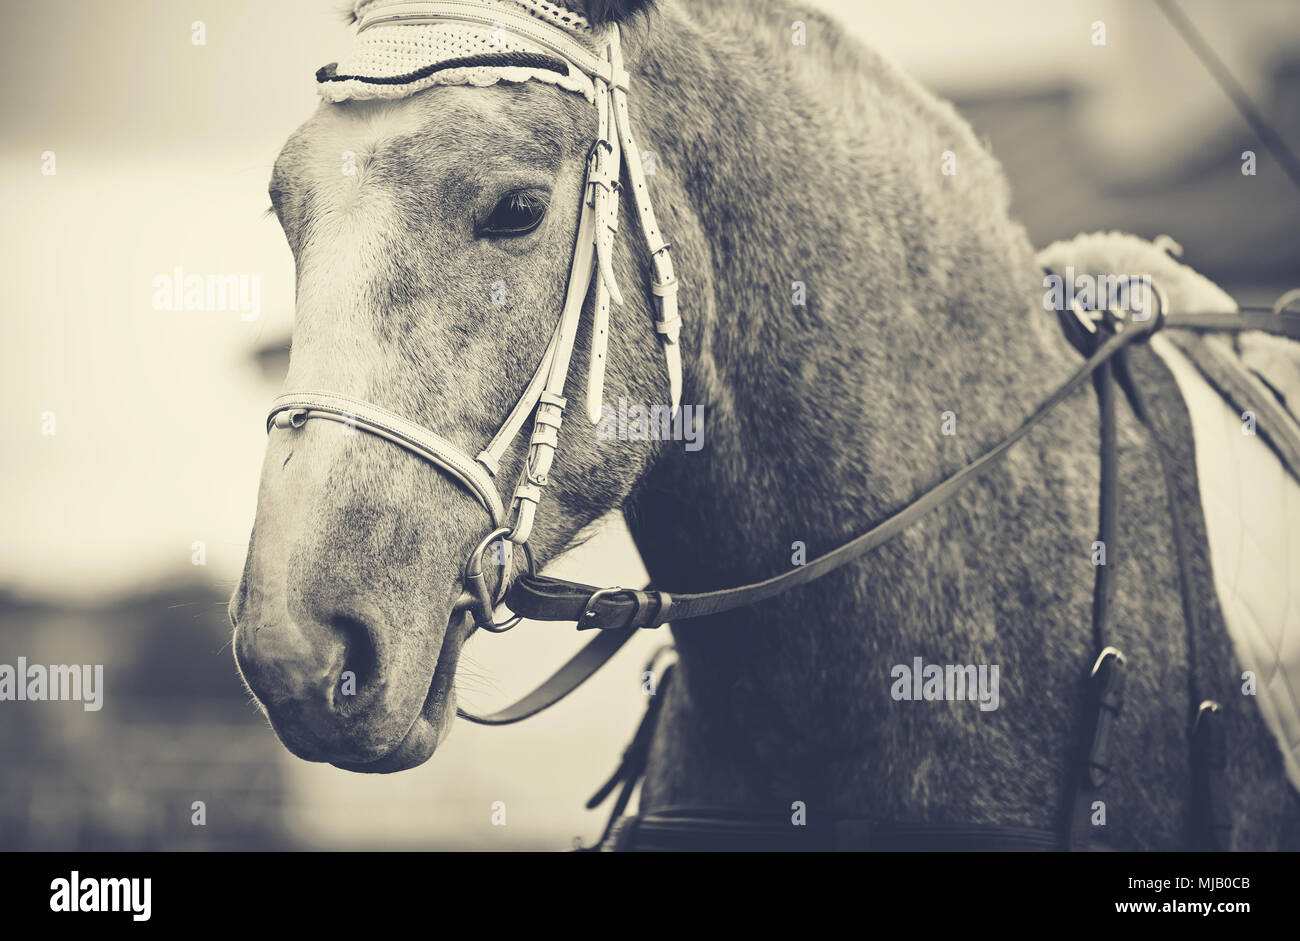 Portrait of a gray horse in a bridle. - Stock Image